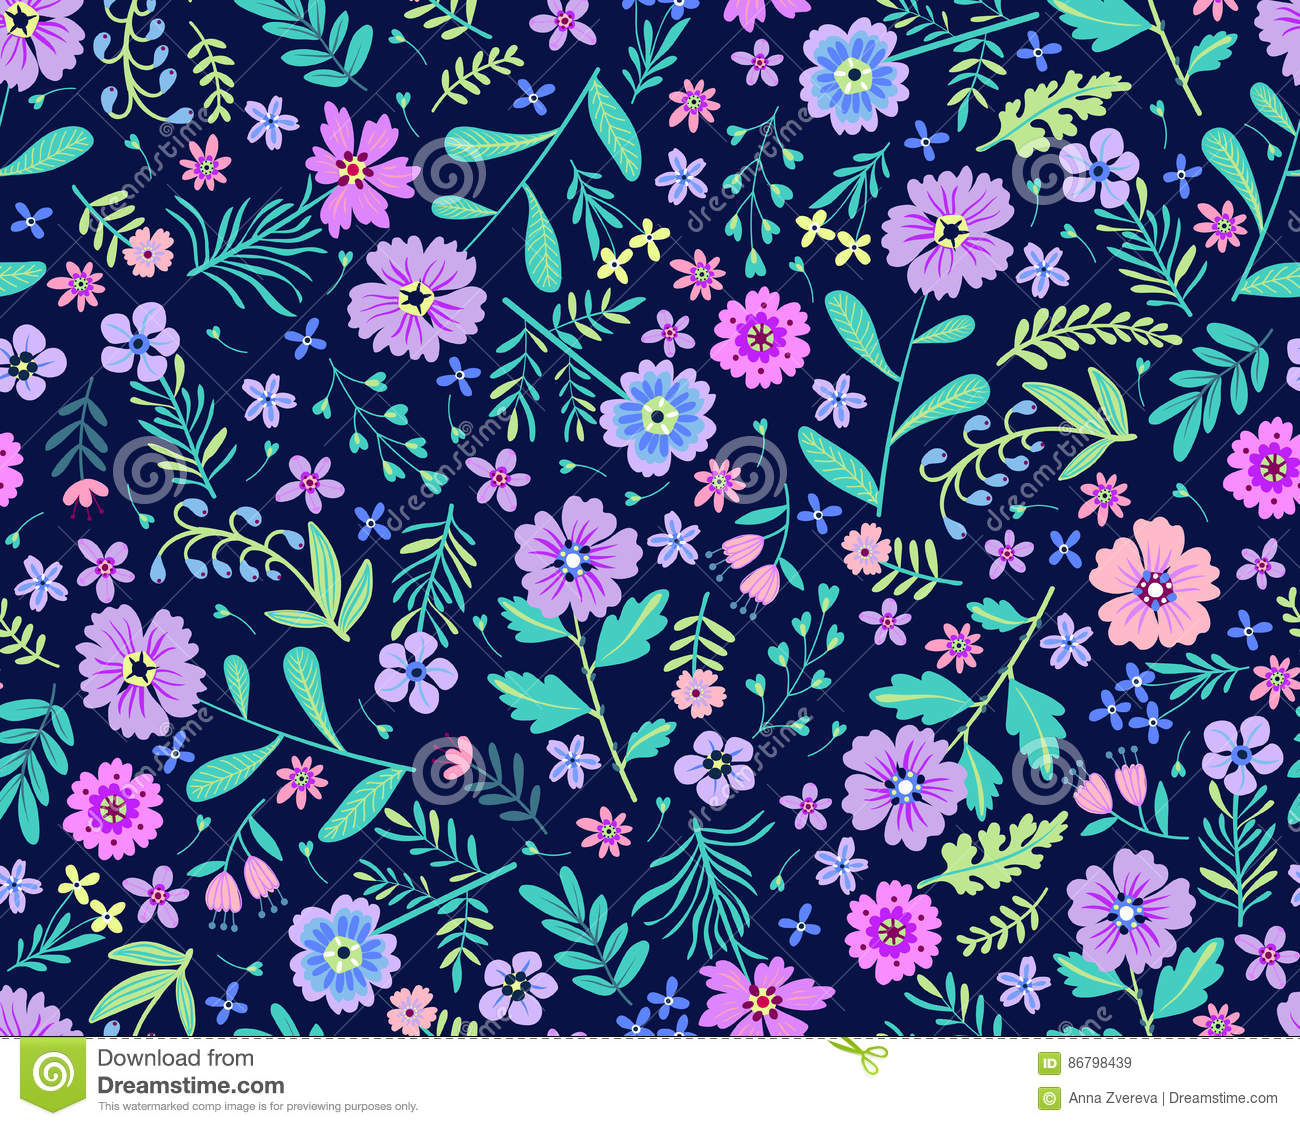 Cute Floral Pattern Stock Vector Illustration Of Concept 86798439